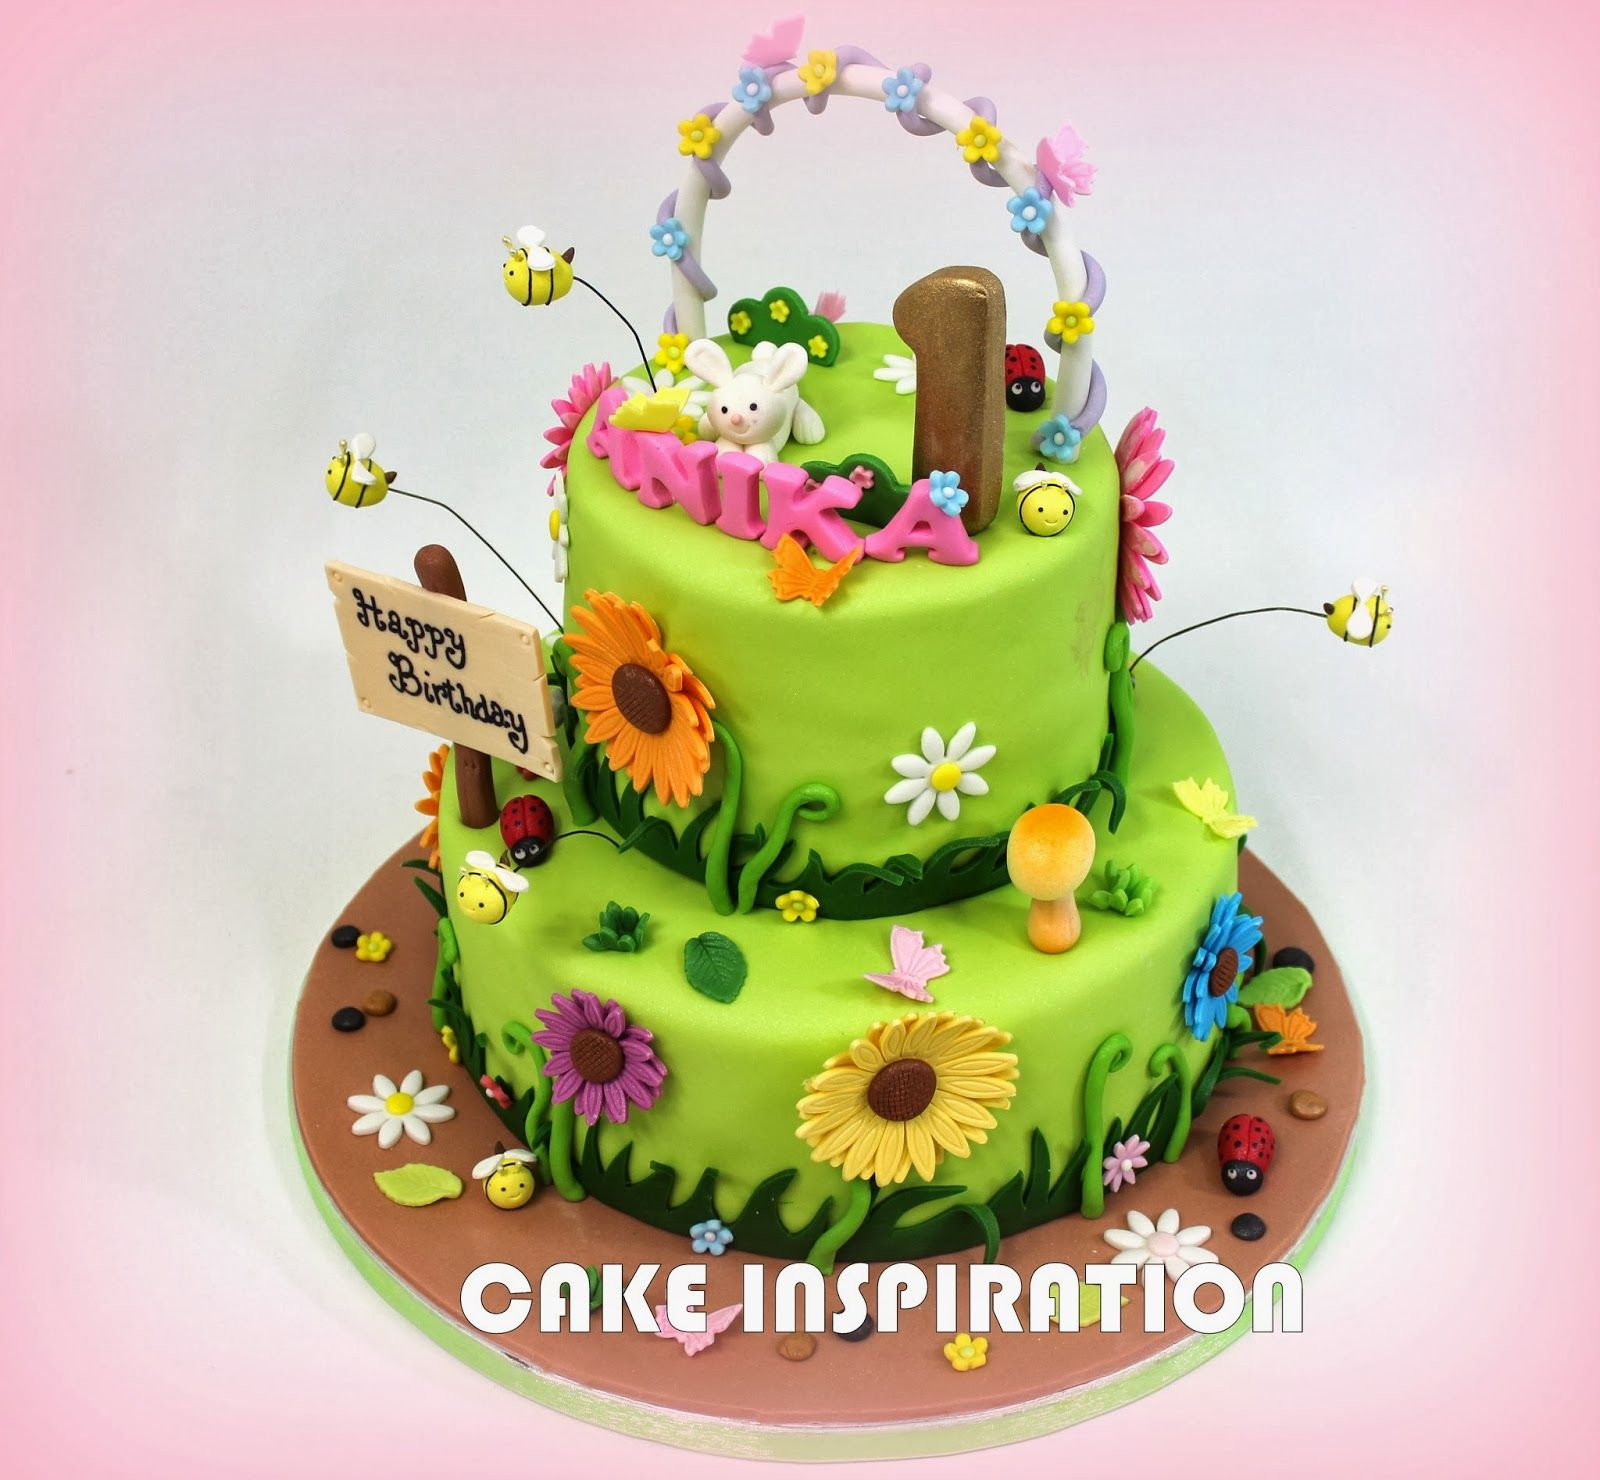 garden themed cake ideas theme daisy theme flower theme cake garden cakes - Garden Design Birthday Cake